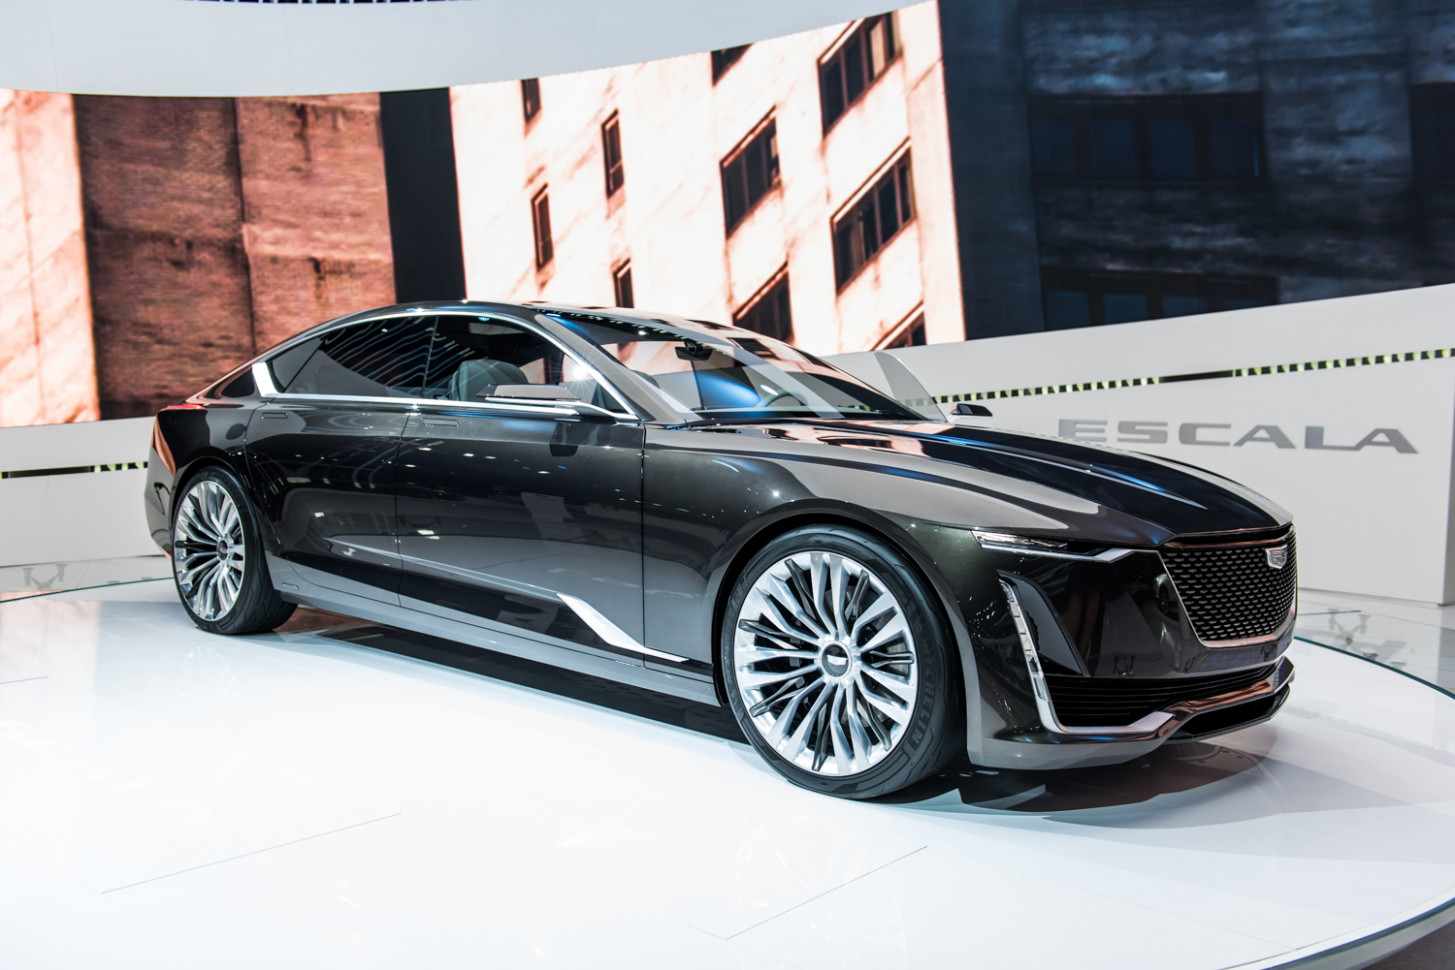 First Drive New Cadillac Sedans For 2022